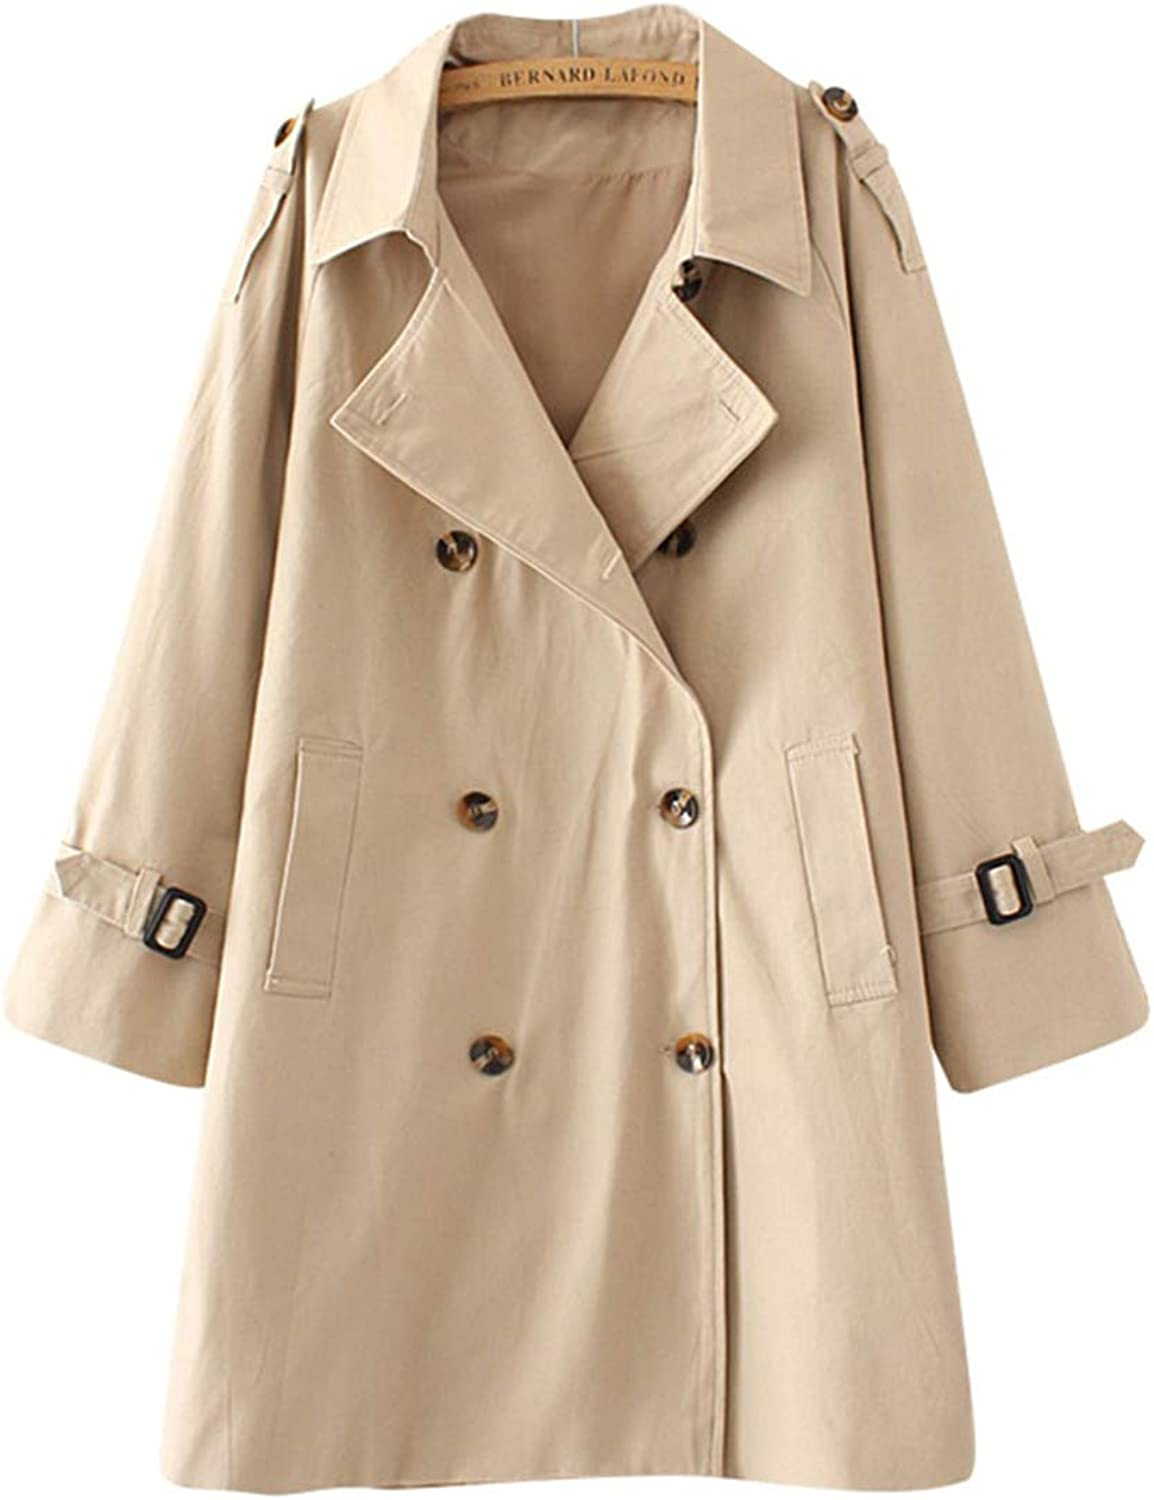 Spring Autumn Casual Trench Coat Women's Large Size Loose DoubleBreasted Windbreakers Long Solid Overcoats